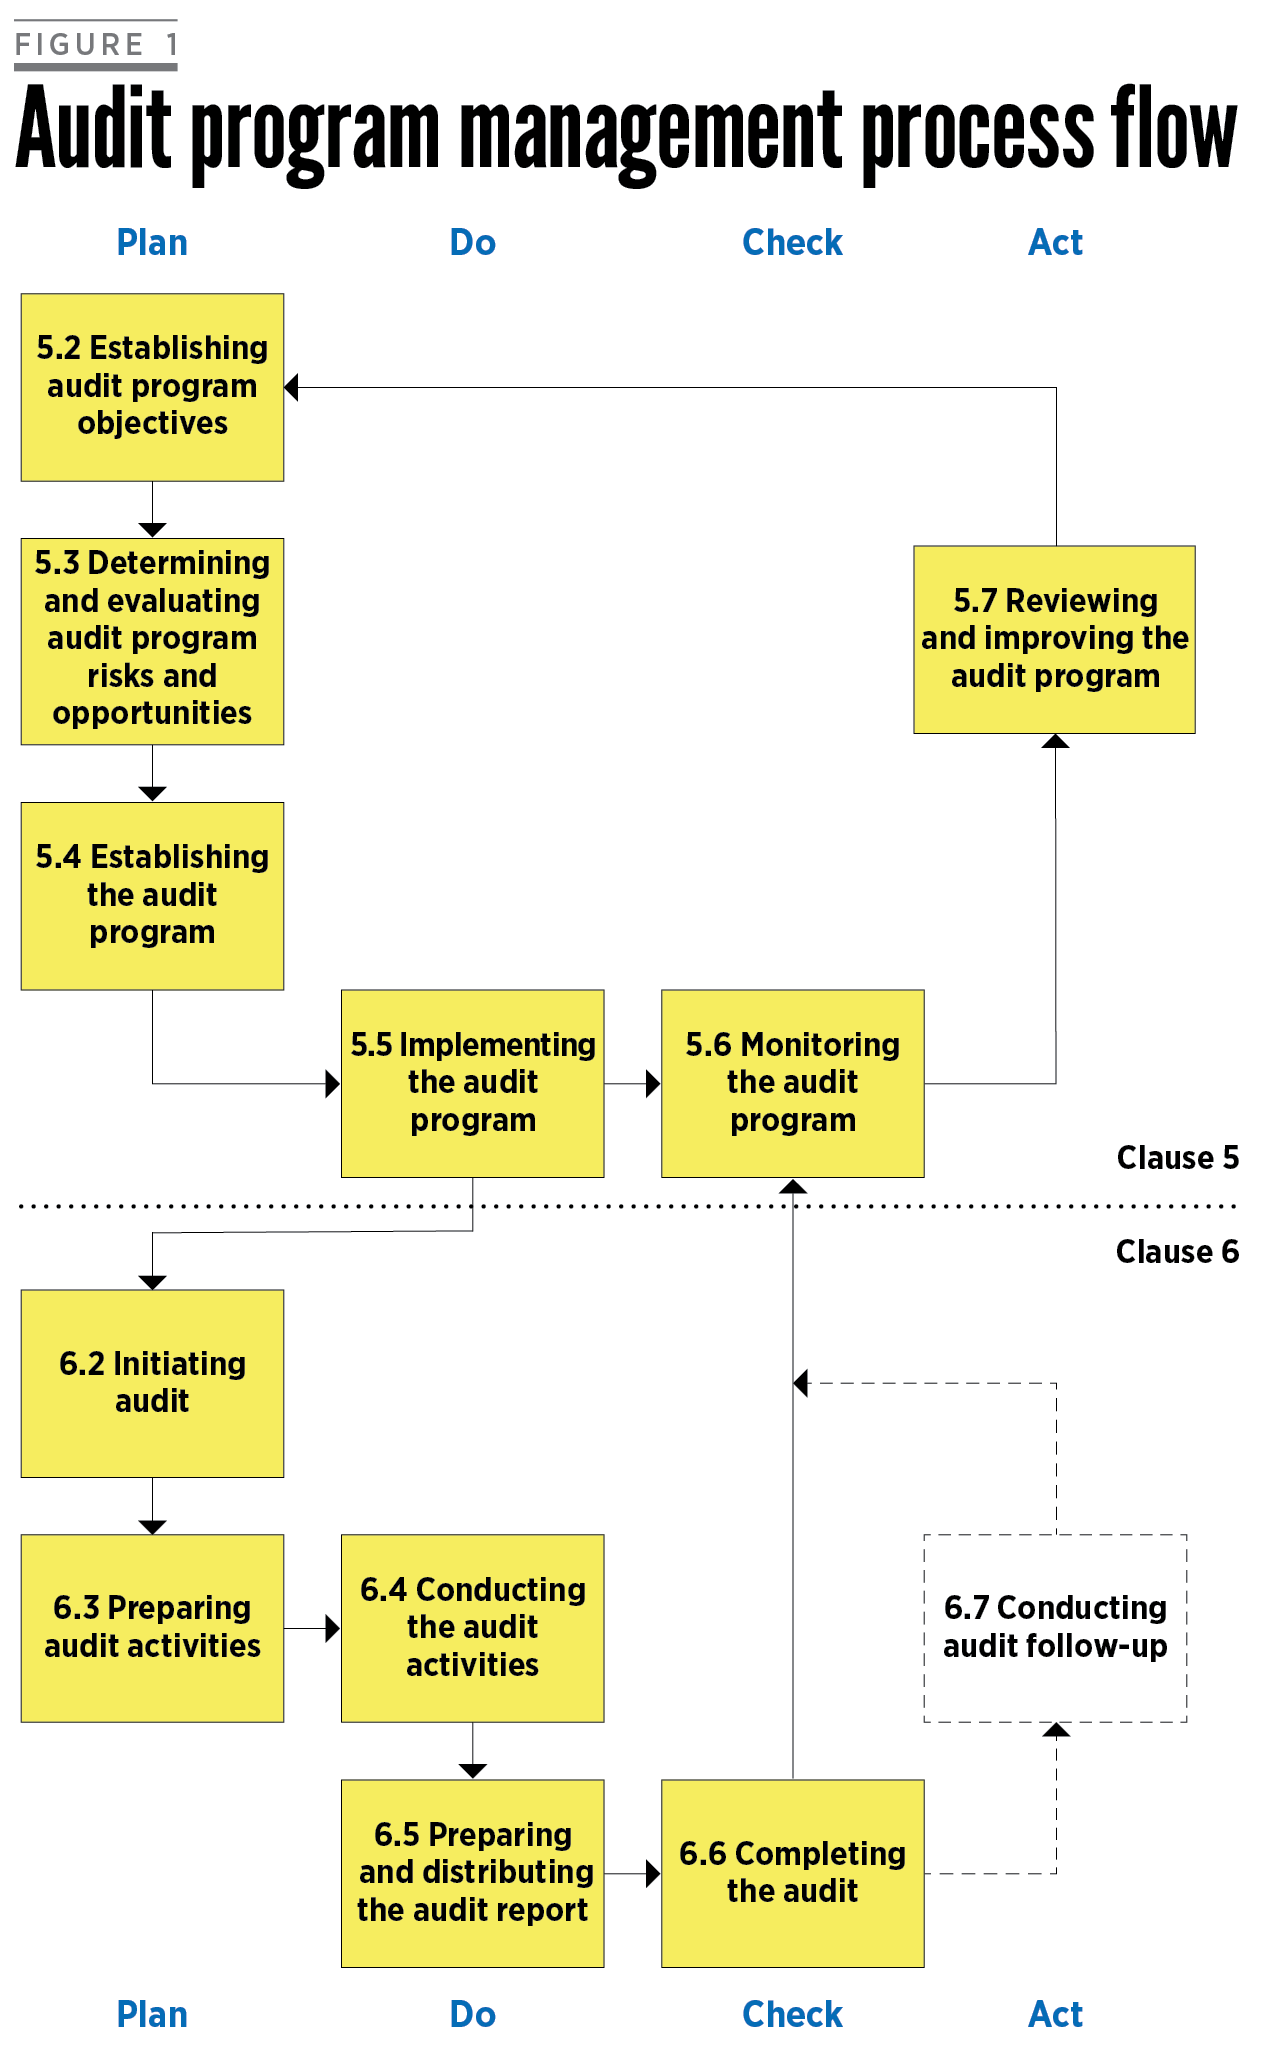 Standard Issues Game Set Match Process Flow Diagram Six Sigma The Content Of Iso 190112018 Is Summarized In A As Shown Figure 1